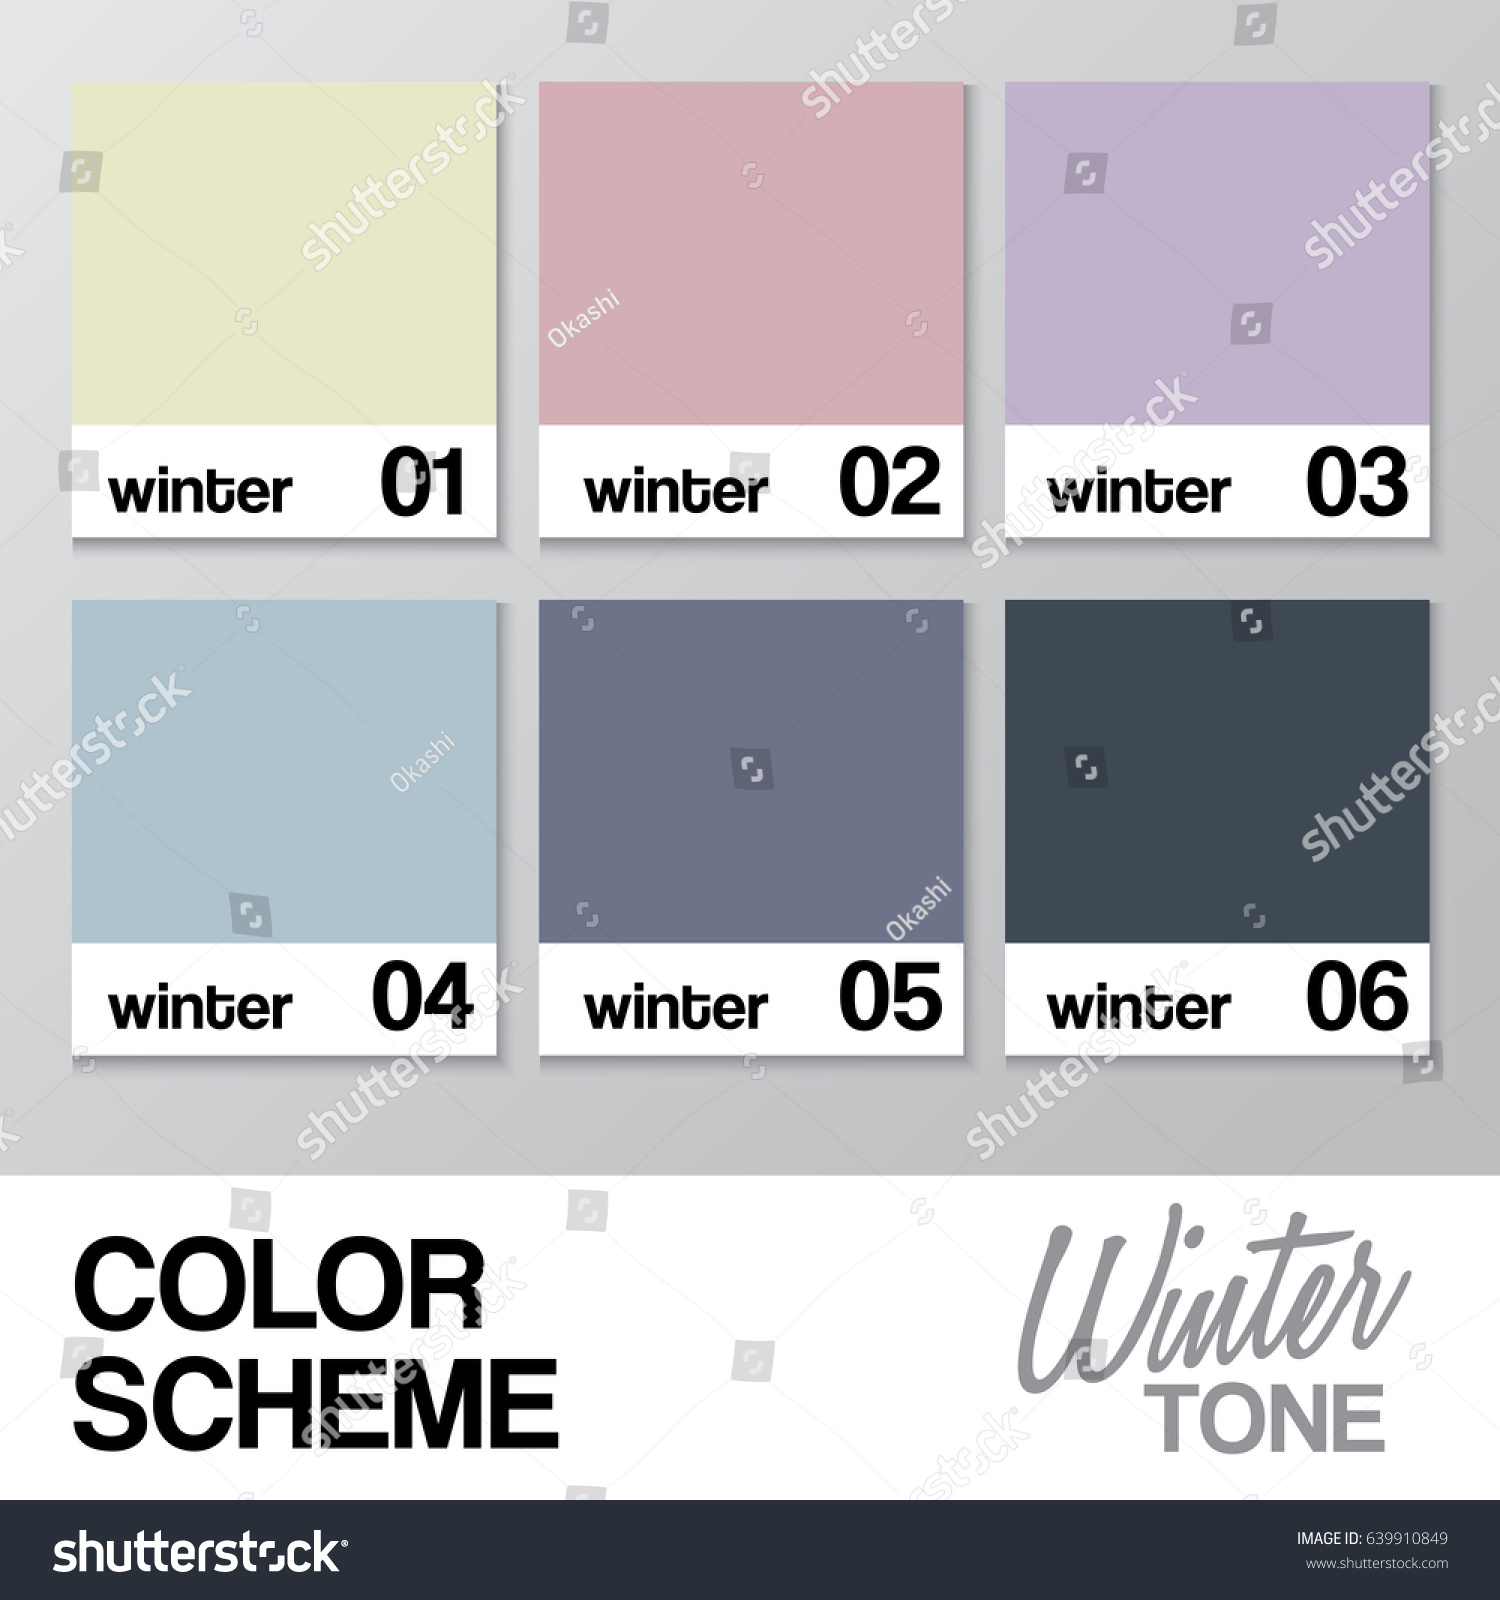 Color chart winter vector illustration stock vector 639910849 color chart for winter vector illustration nvjuhfo Choice Image